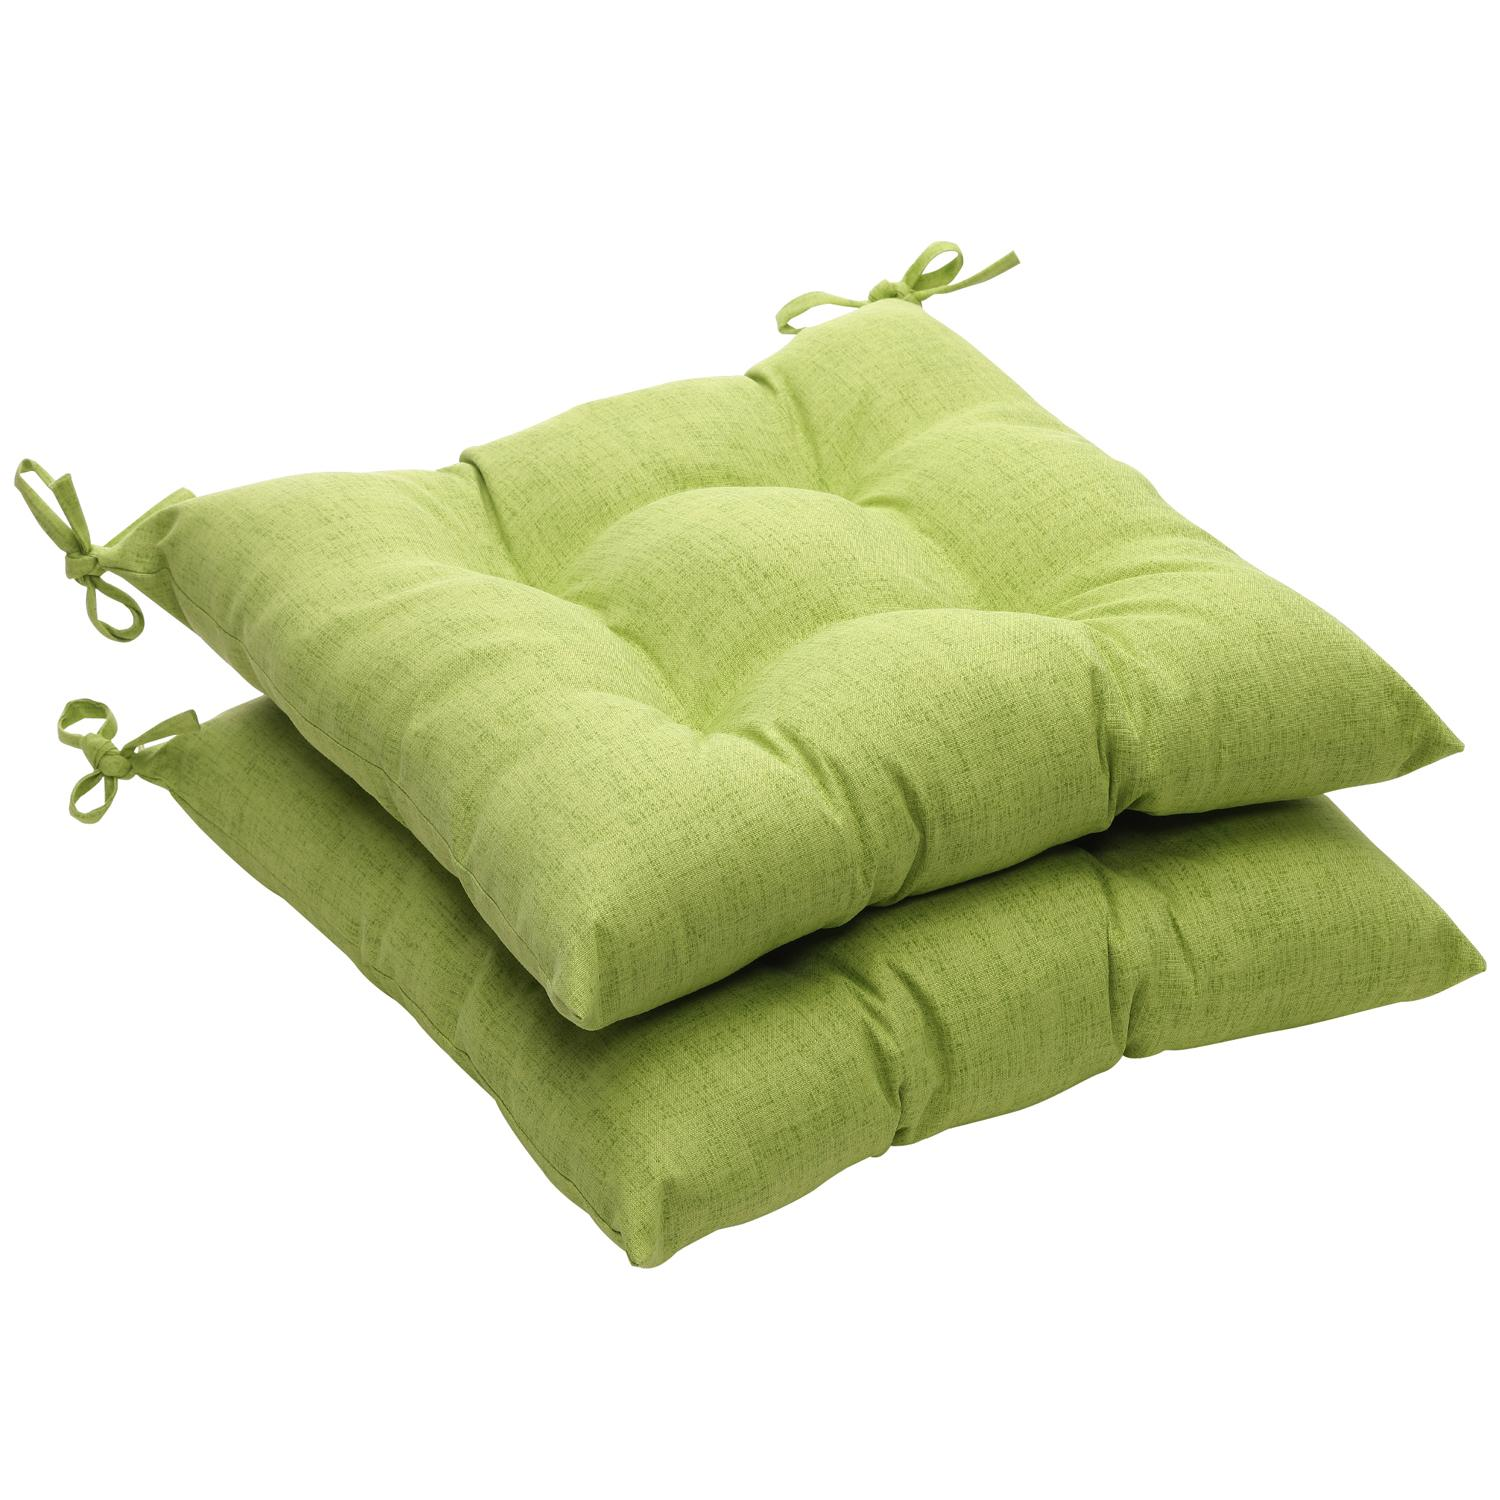 Set of 2 Eco-Friendly Recycled Textured Green Tufted Outdoor Seat Cushions 19""